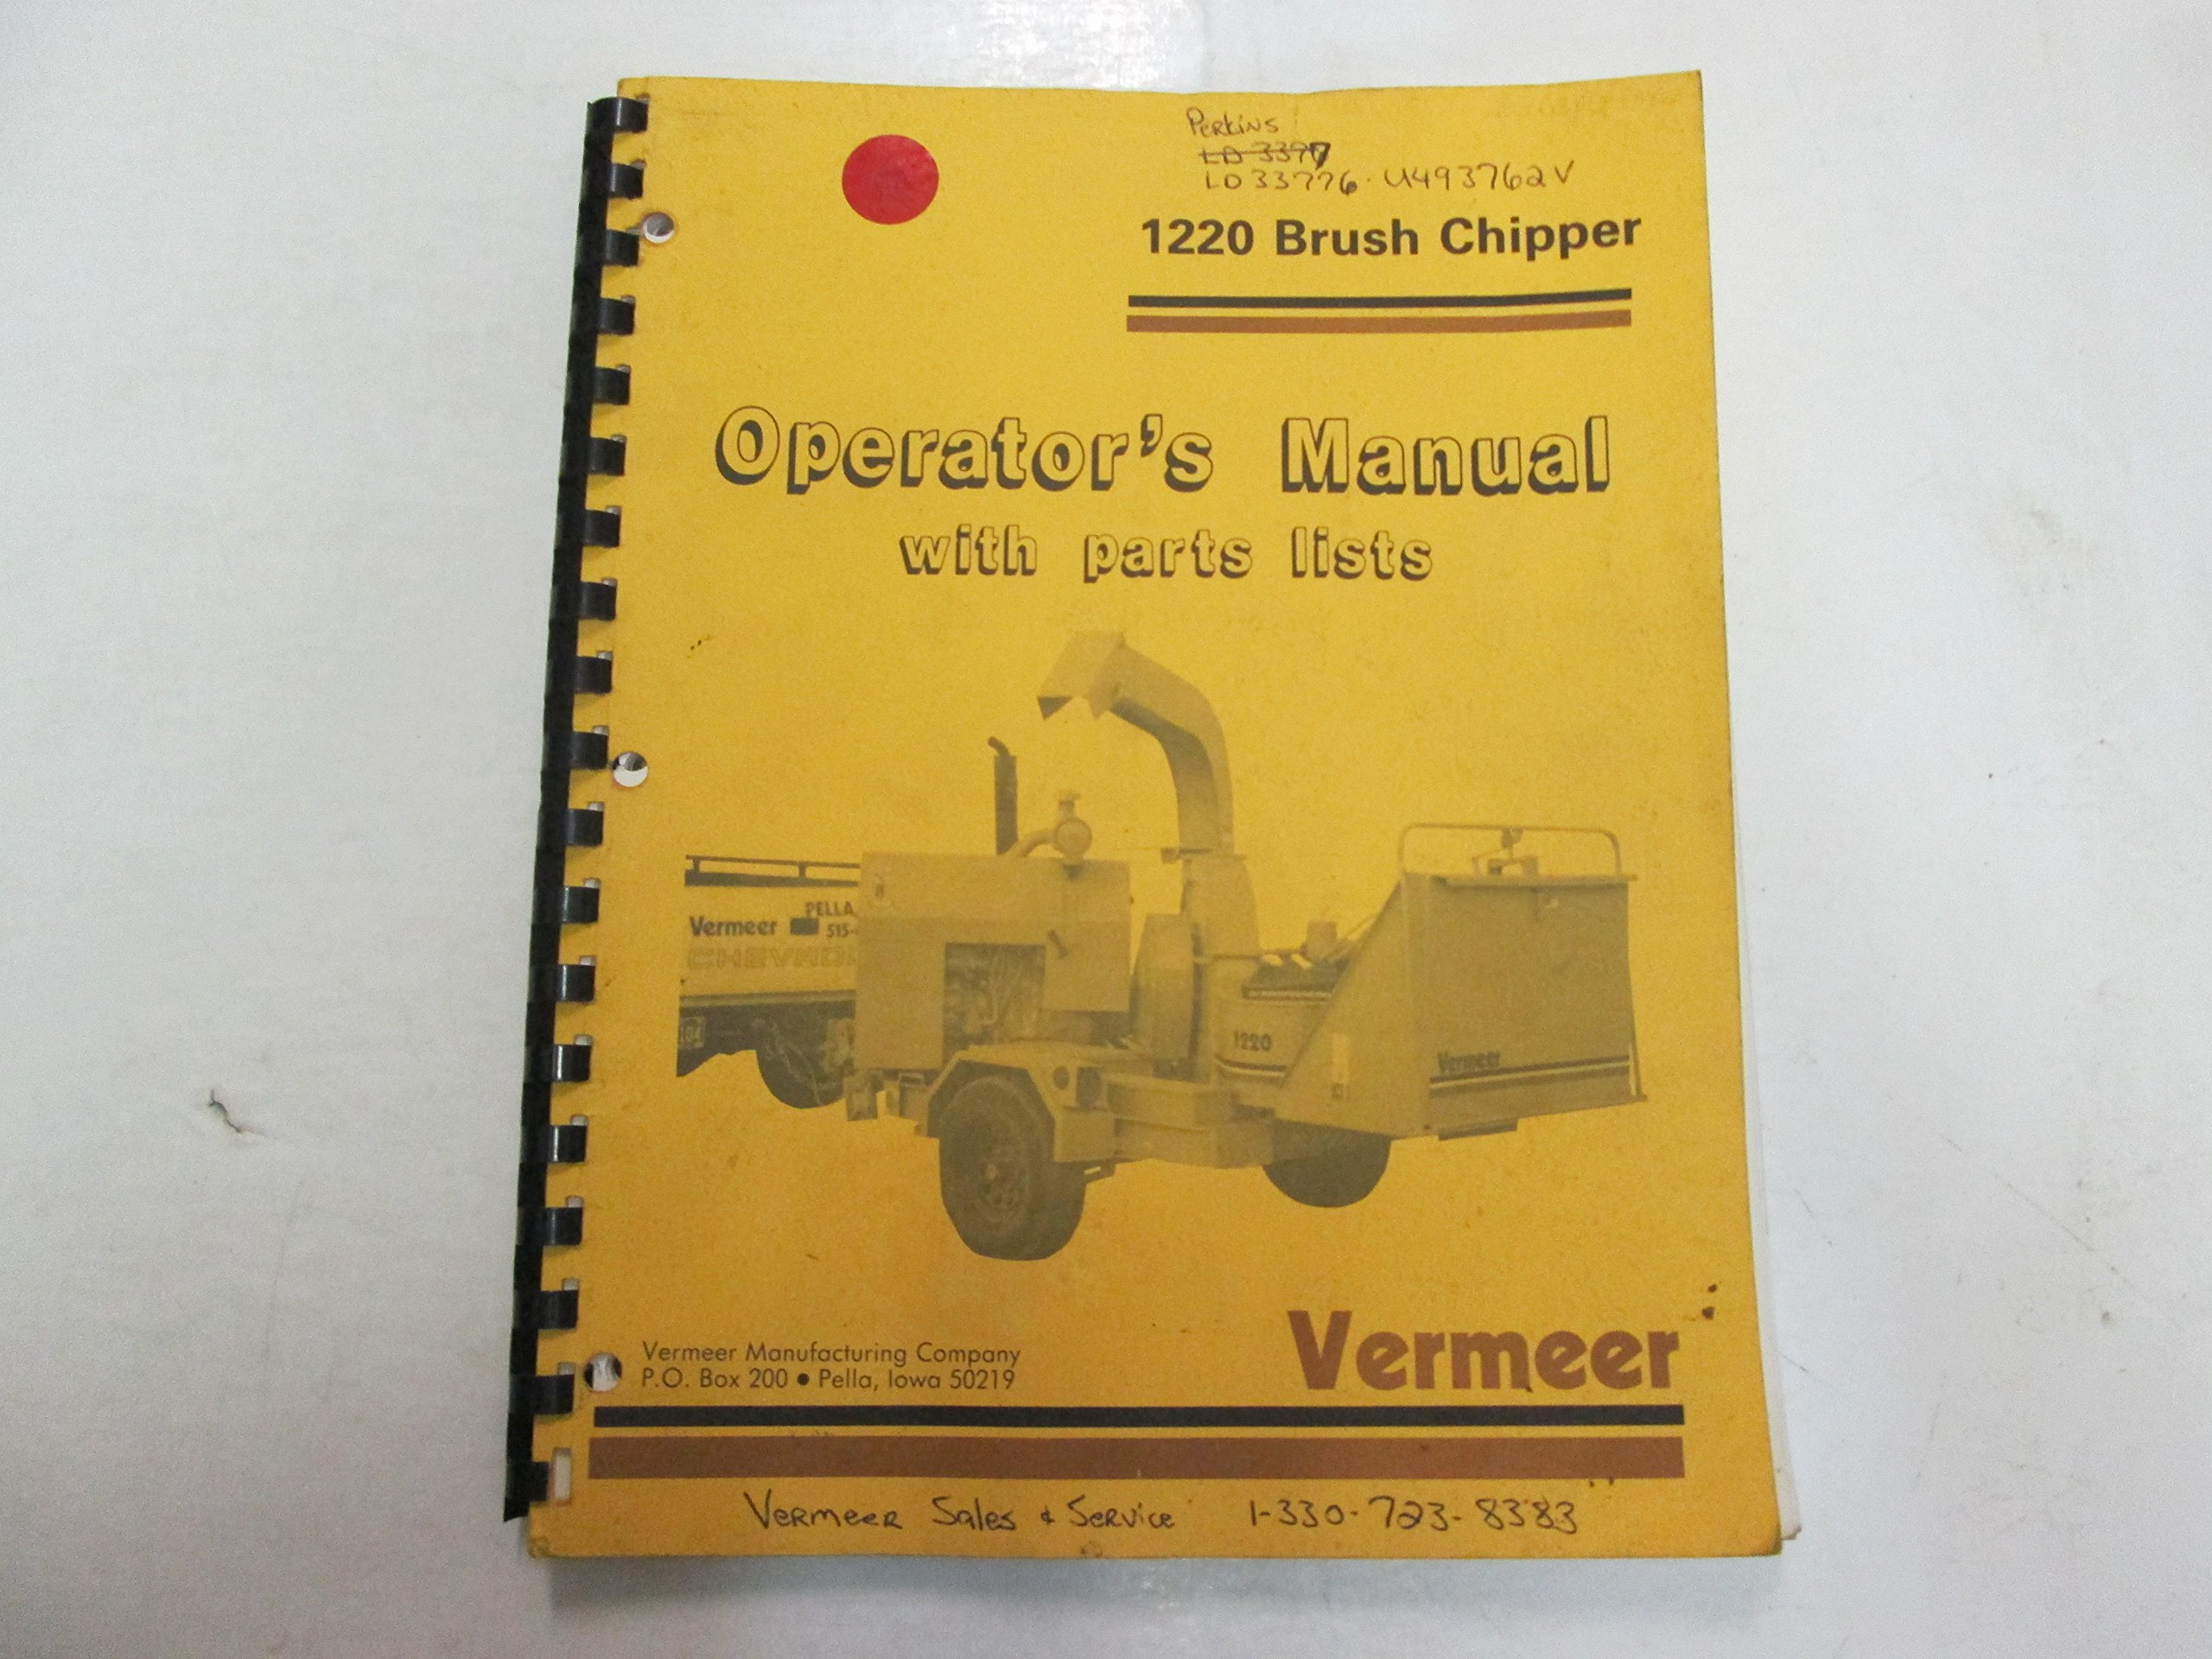 Vermeer 1220 Brush Chipper Operators Manual w/ Parts list STAINED WRITING  OEM: Vermeer Manufacturing Company: Amazon.com: Books